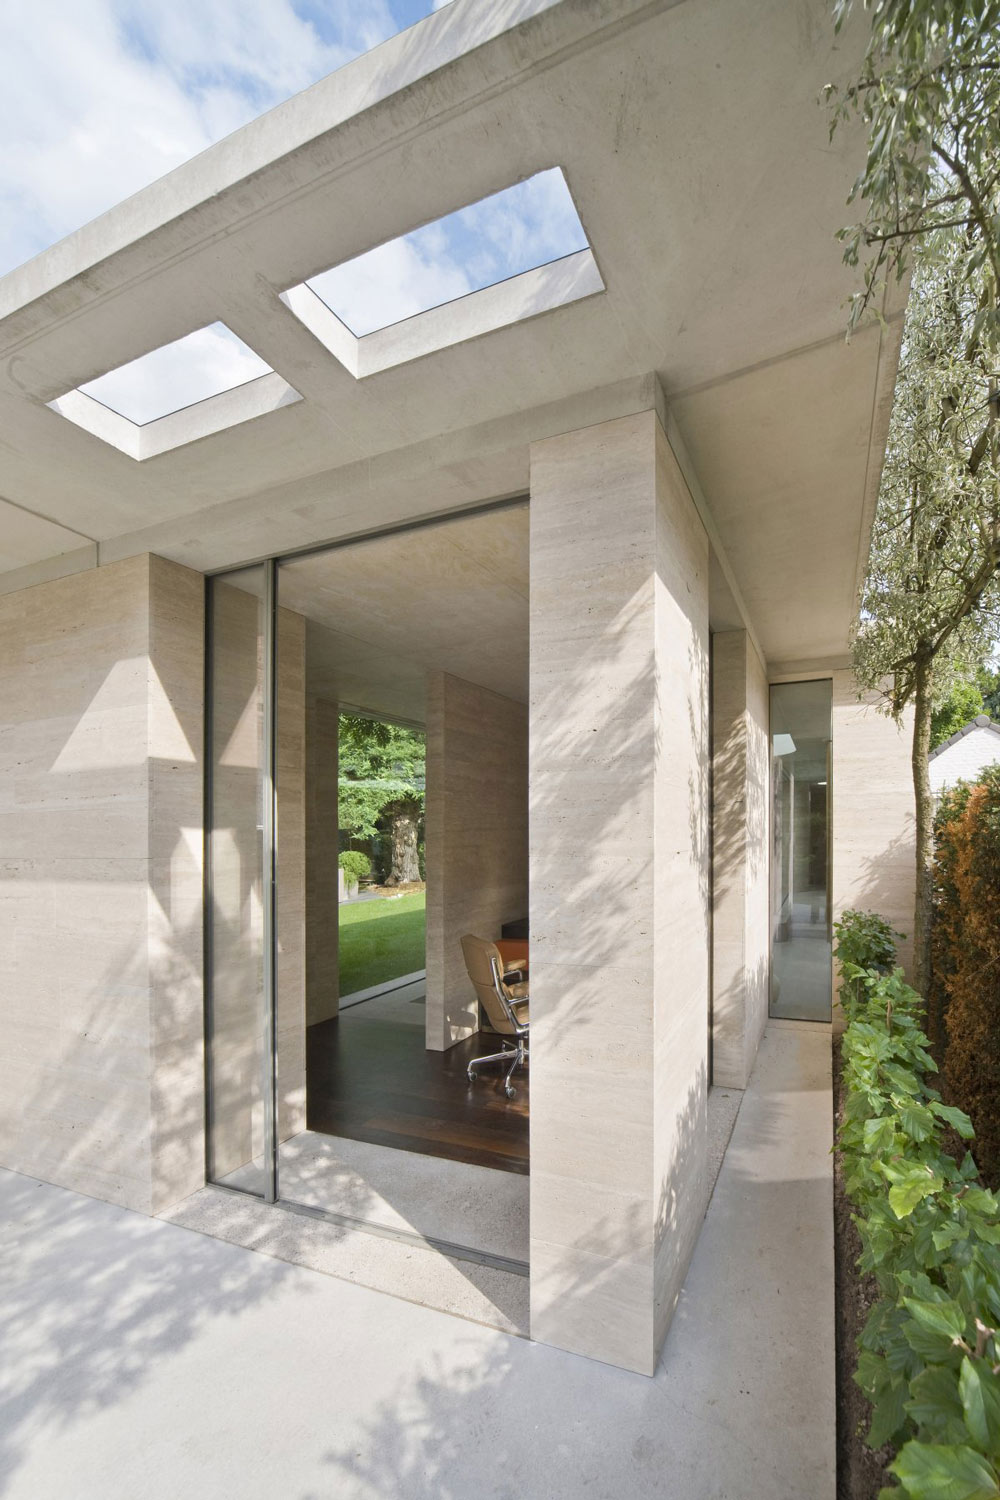 Stone Walls, Extension and Renovation in Eindhoven, The Netherlands